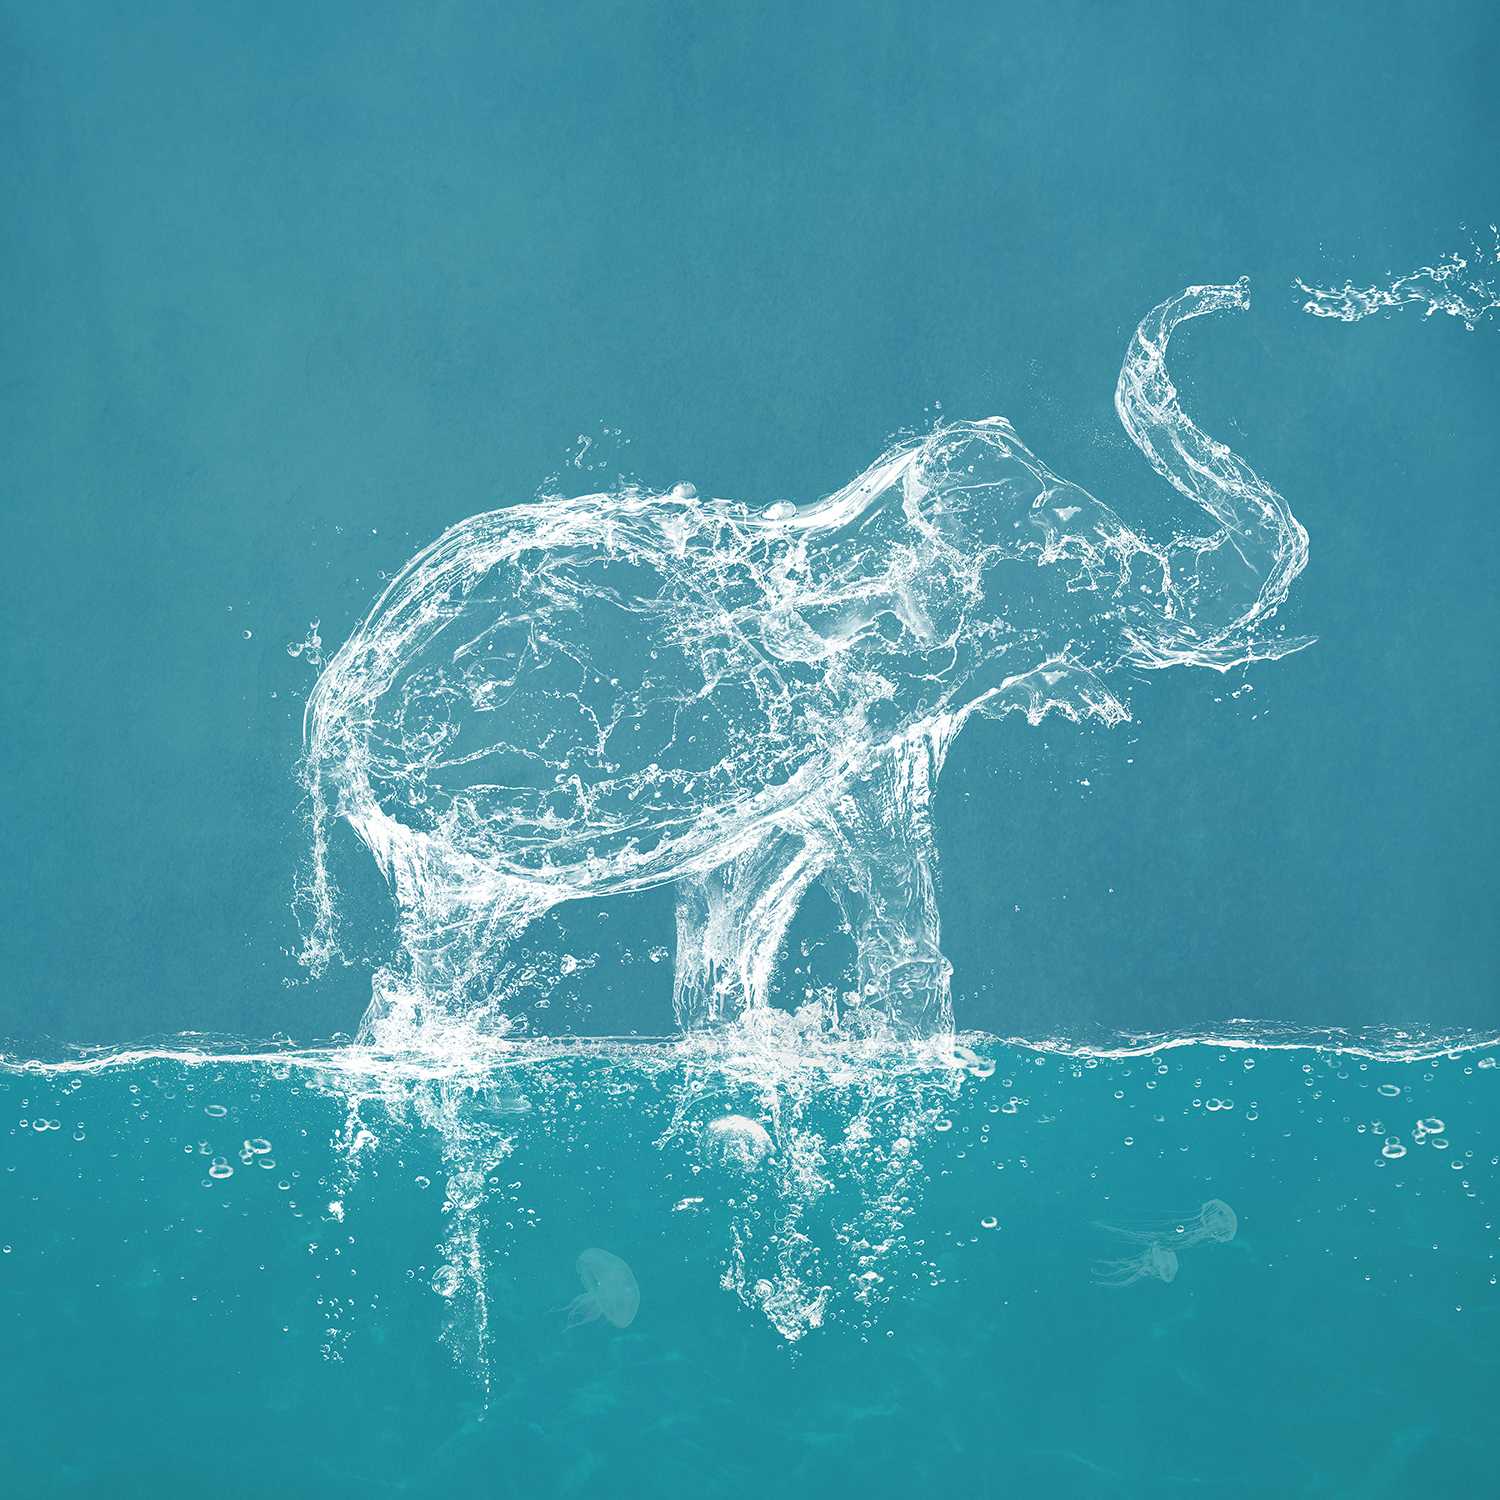 the shape of an elephant blowing water out of its trunk made completely out of water splashes